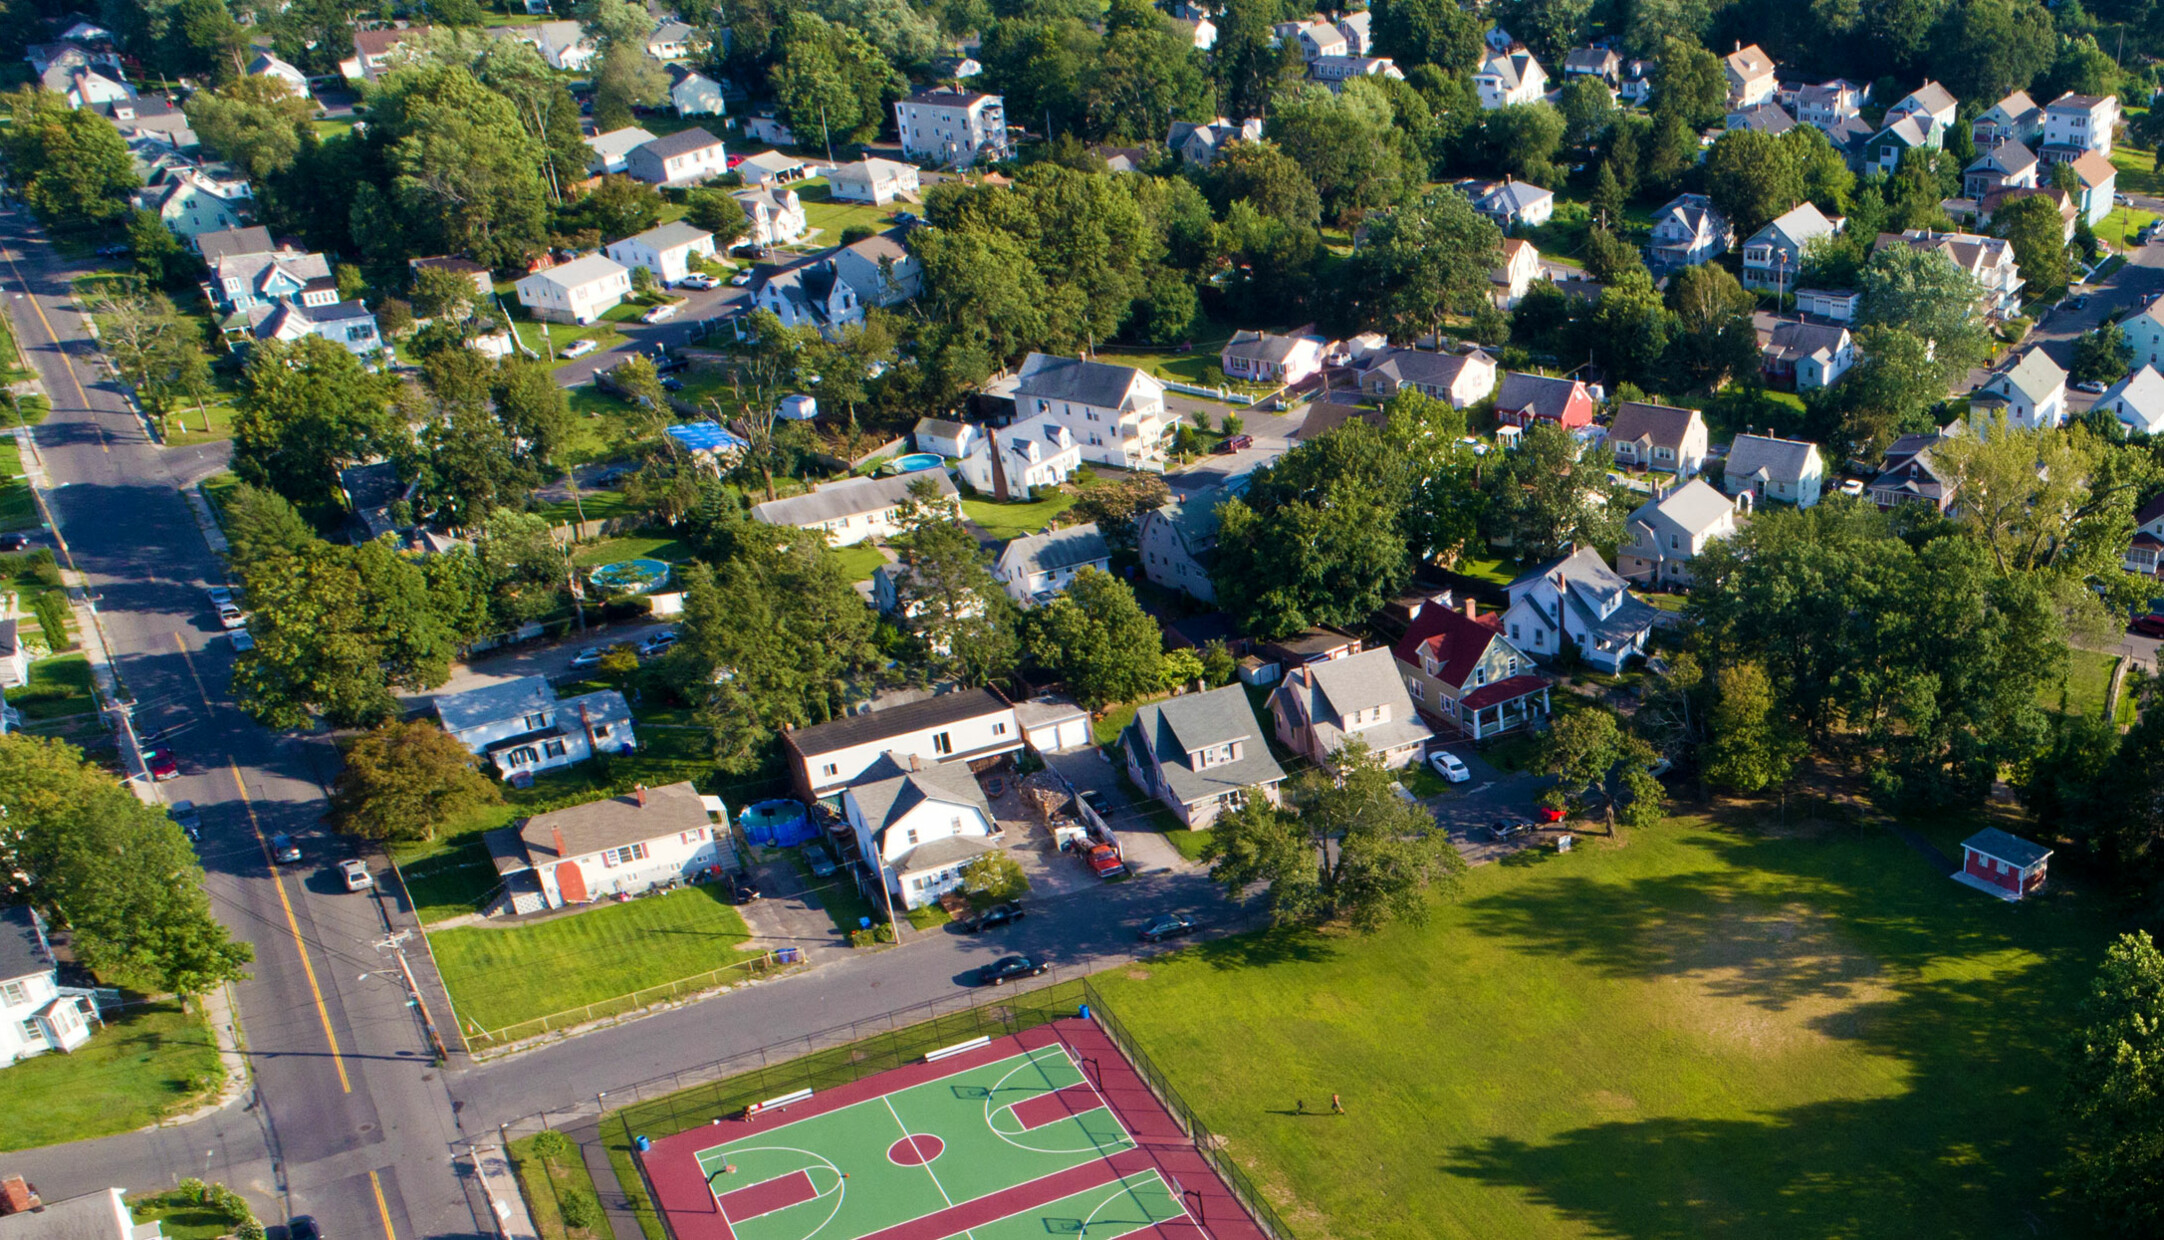 An aerial view of houses and streets in the Hopeville Park neighborhood in Waterbury